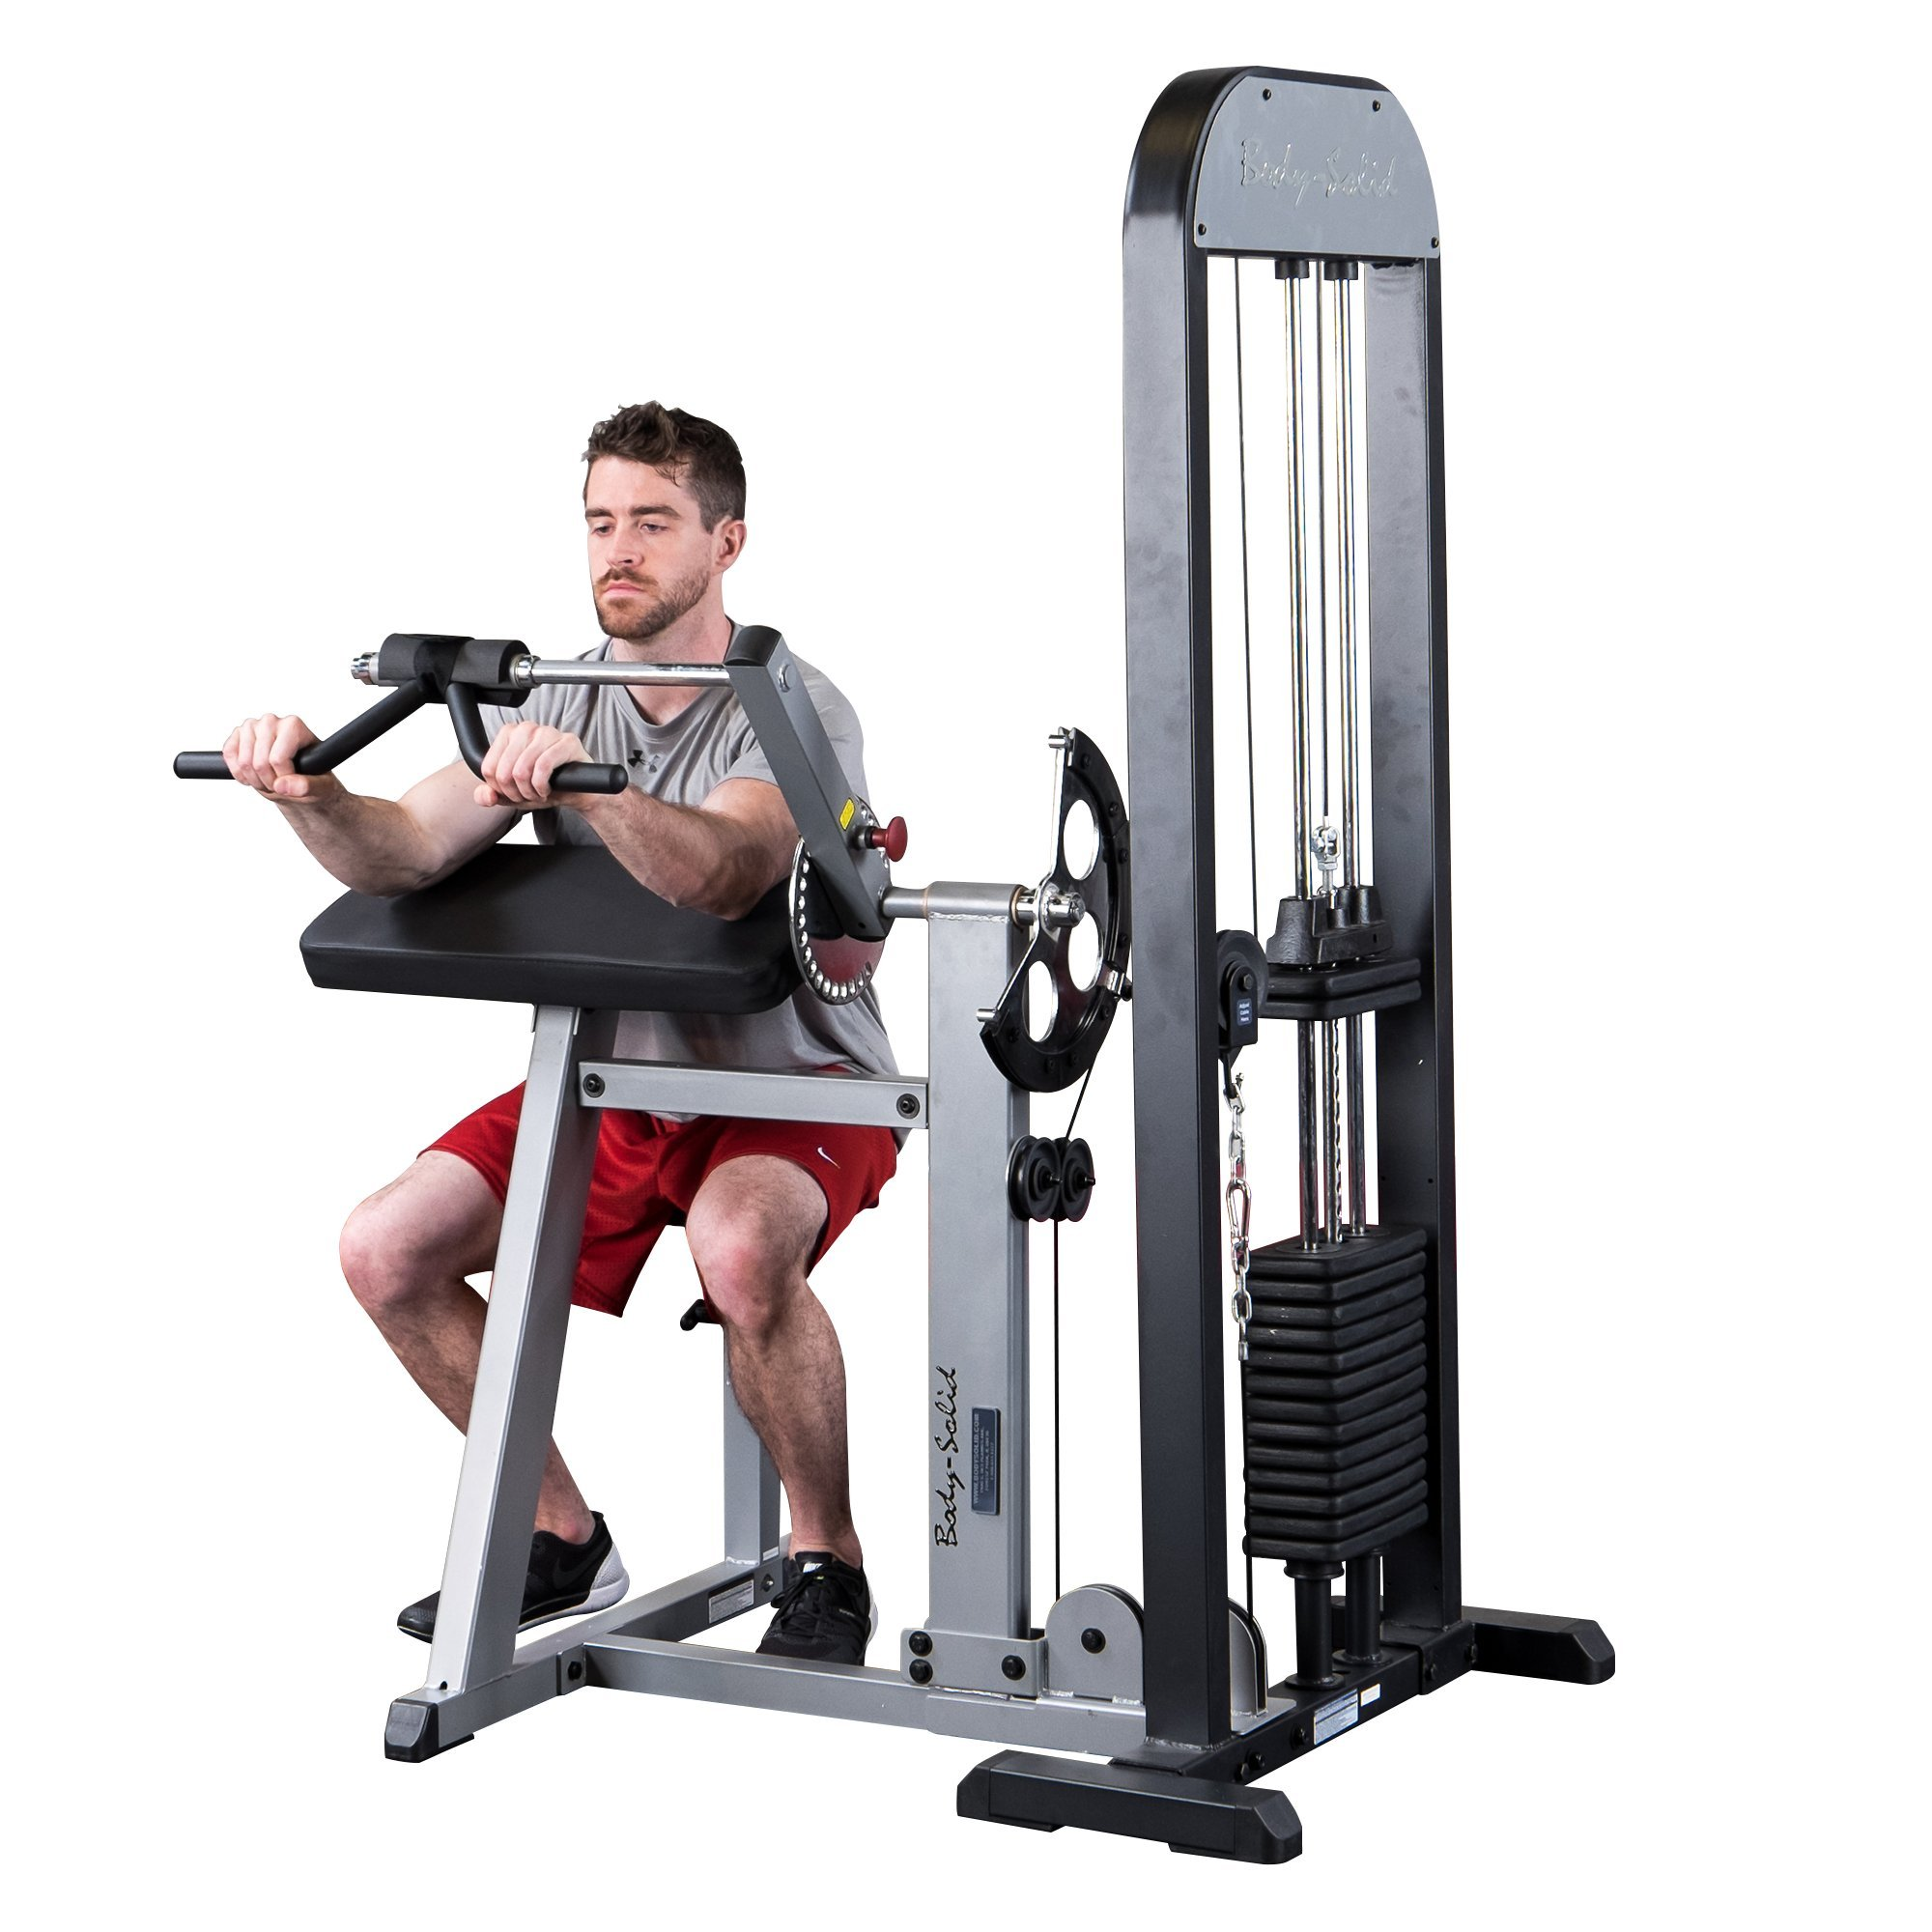 Body Solid GCBTSTK3 Pro Select Bicep/Tricep Machine with DuraFirm Padding and Multi-Grip Handle 310-Pound